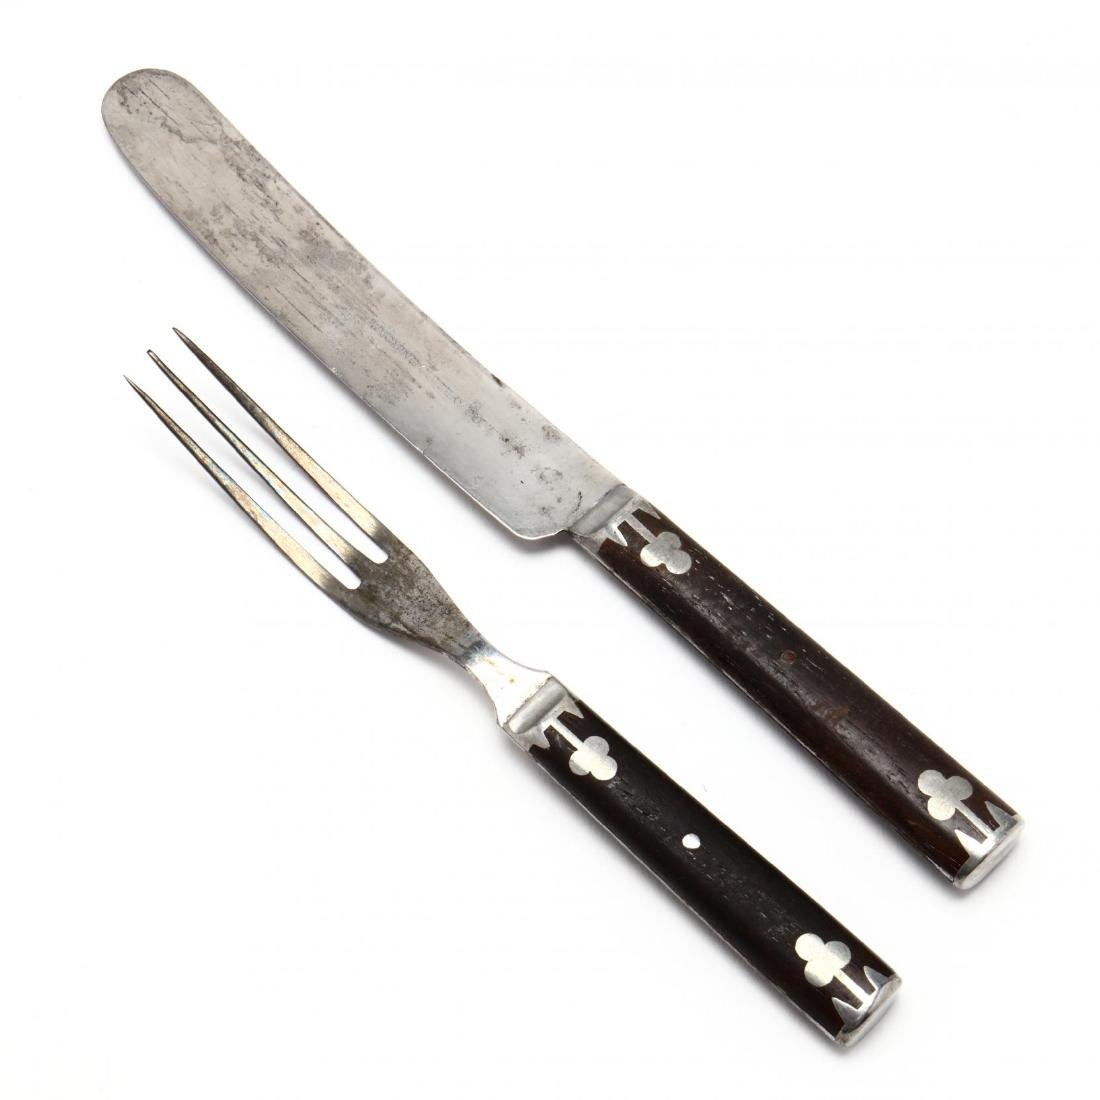 New York Knife Co., Antique Fish Service